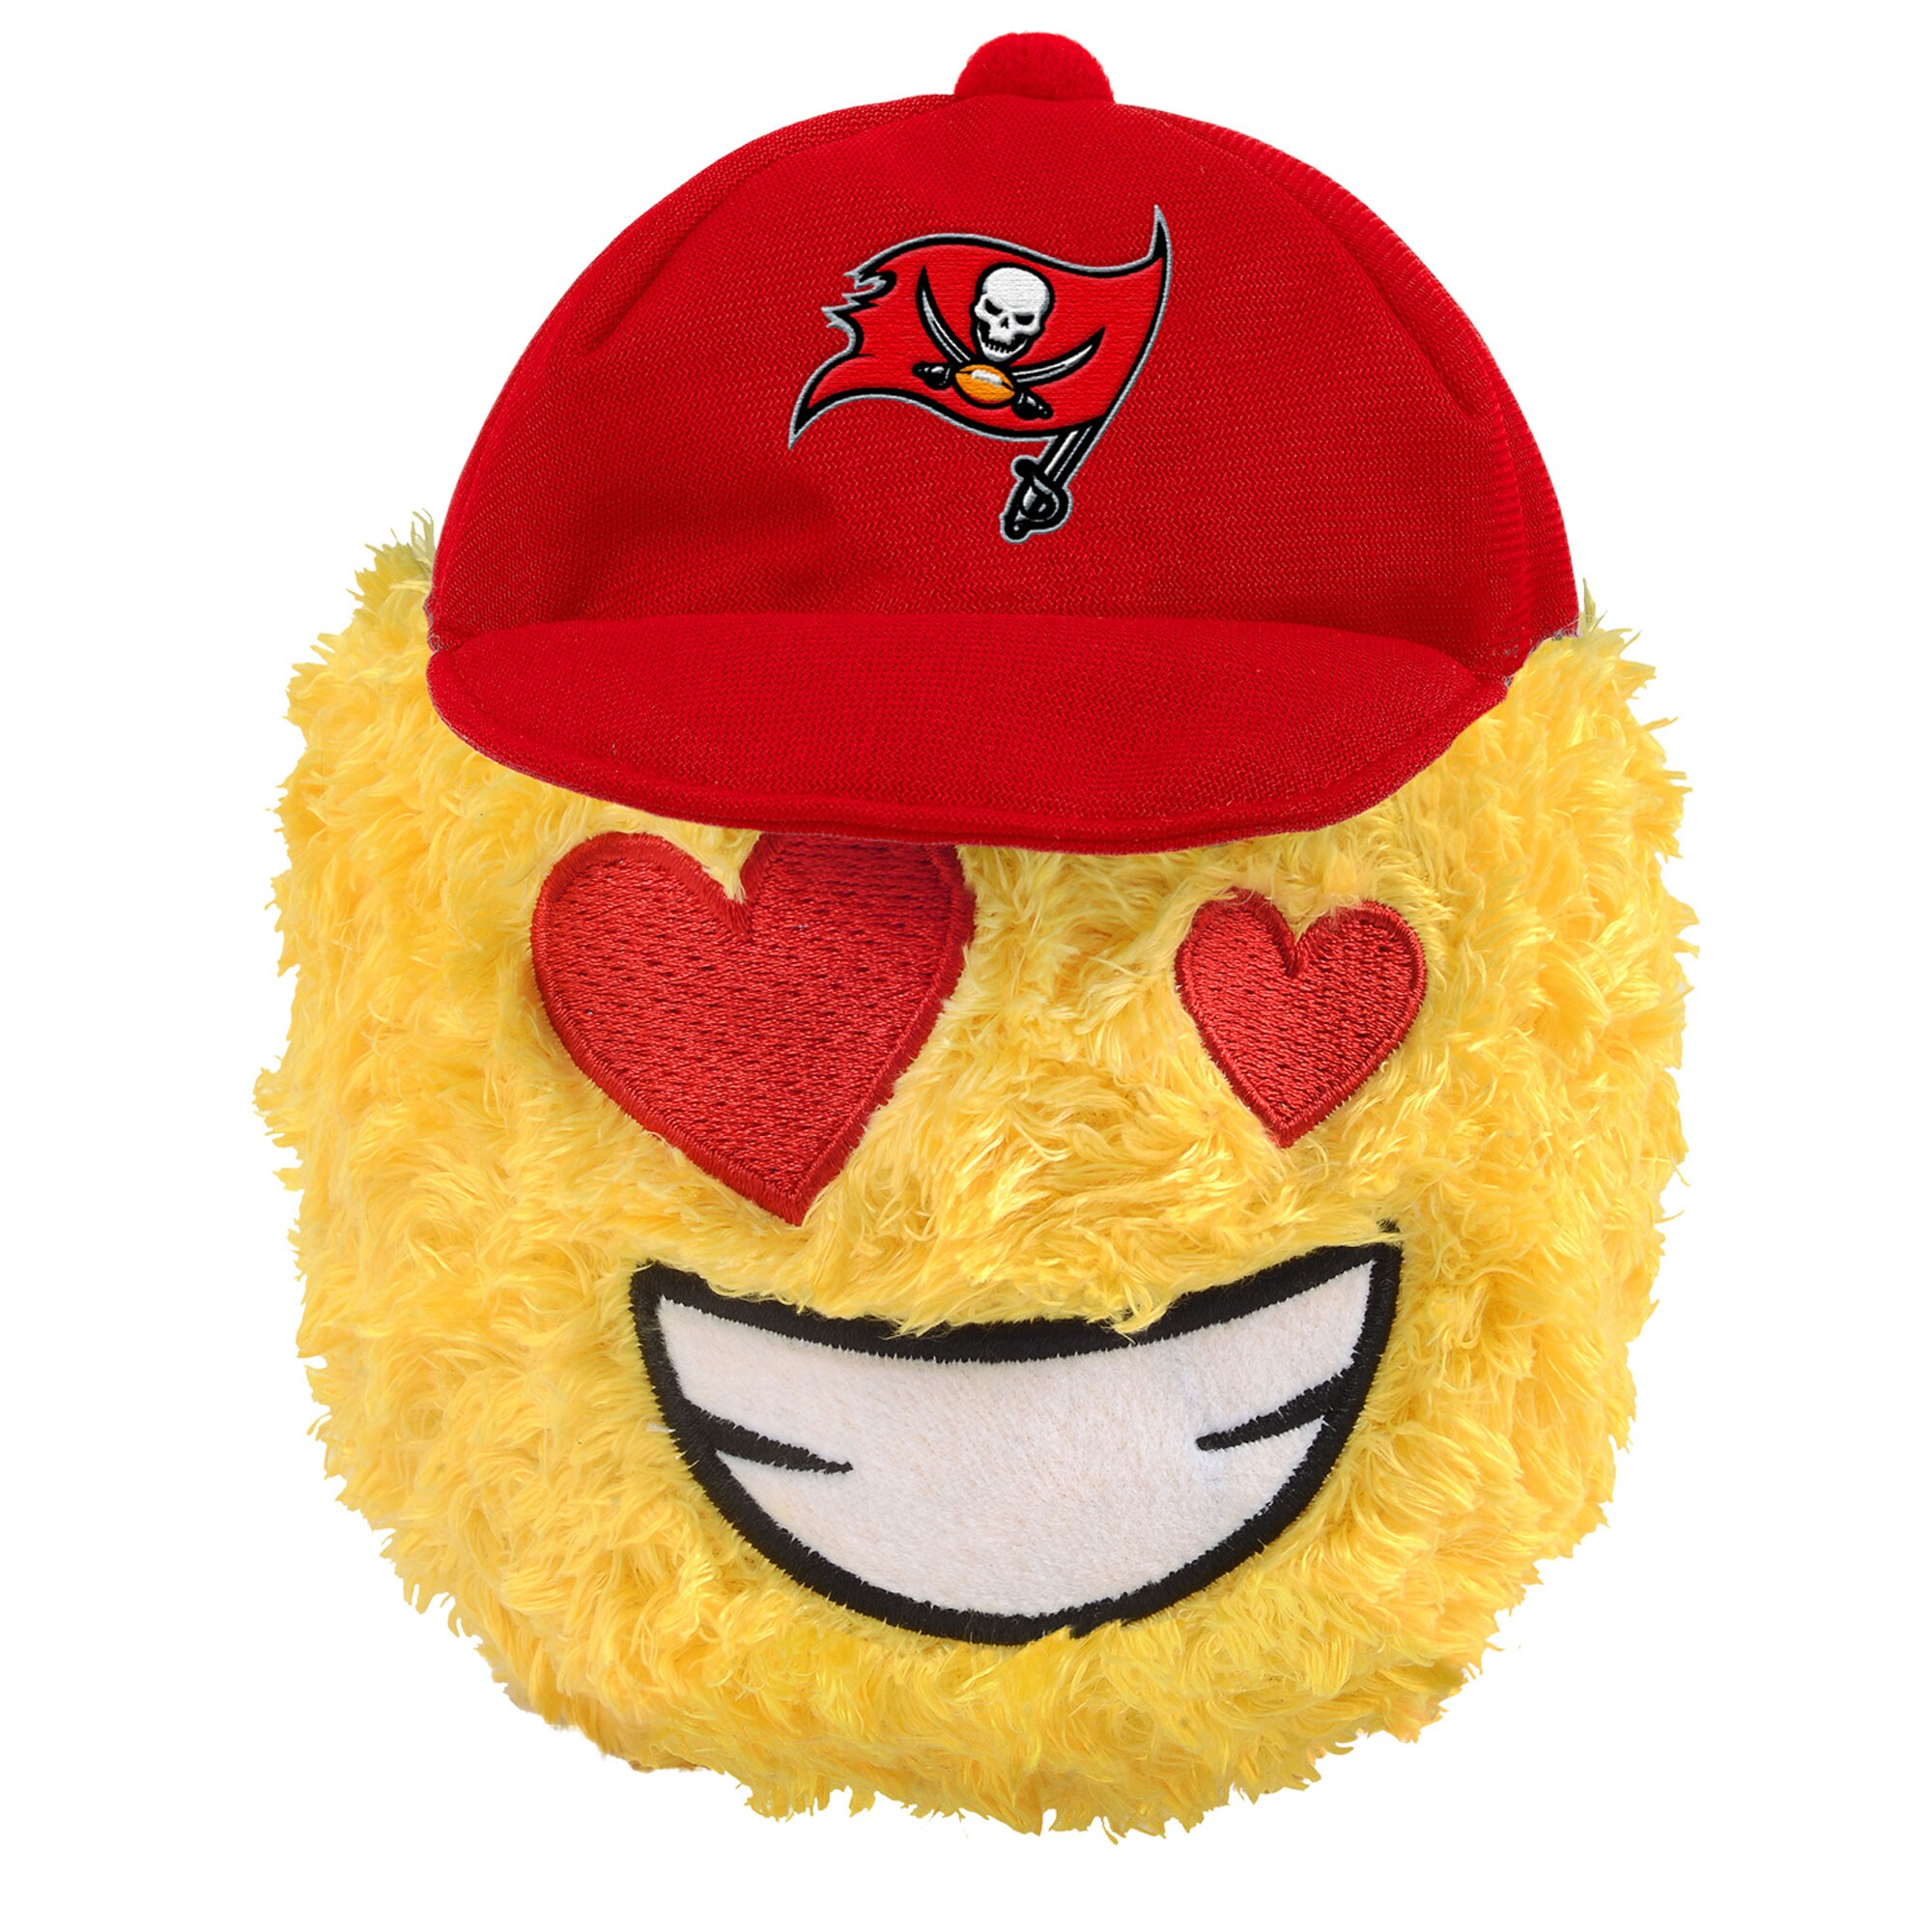 "Tampa Bay Buccaneers 5"" Heart Eyes Teamoji Plush Toy"